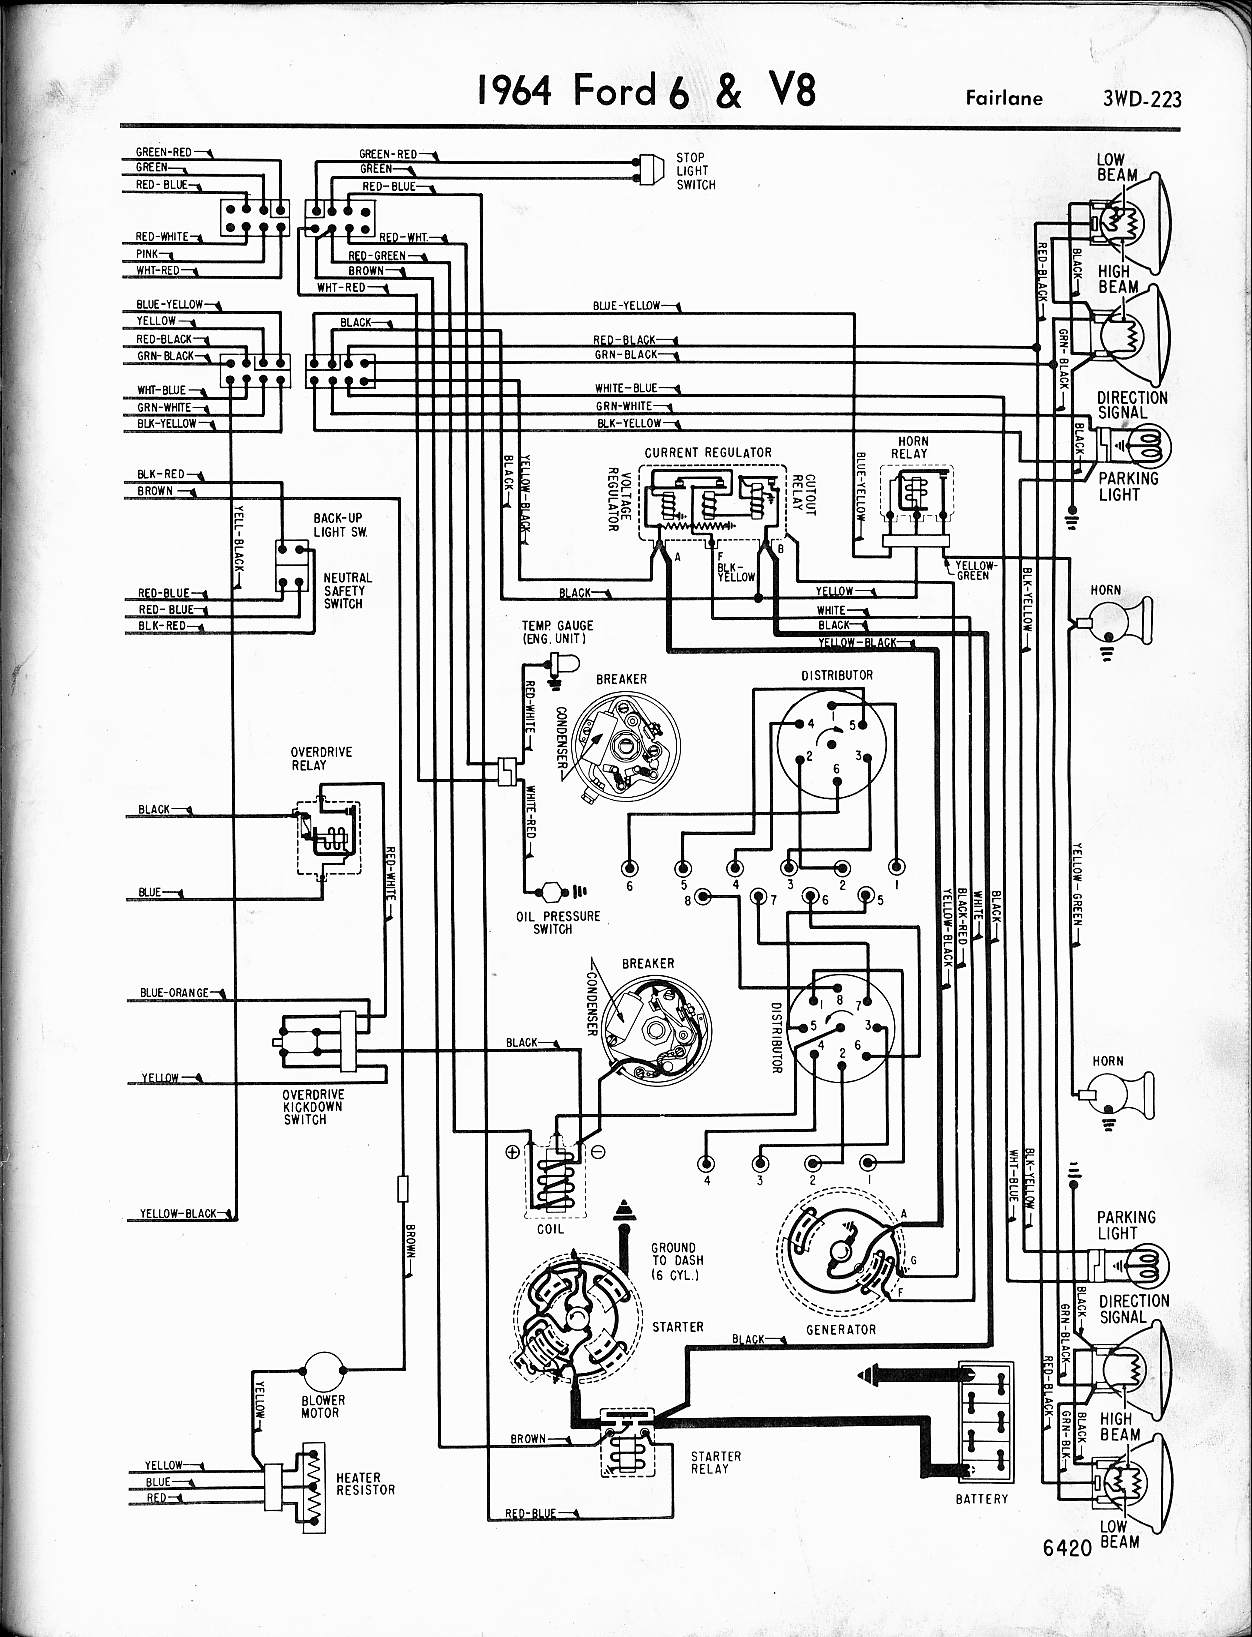 MWire5765 223 57 65 ford wiring diagrams Ford E 350 Wiring Diagrams at creativeand.co